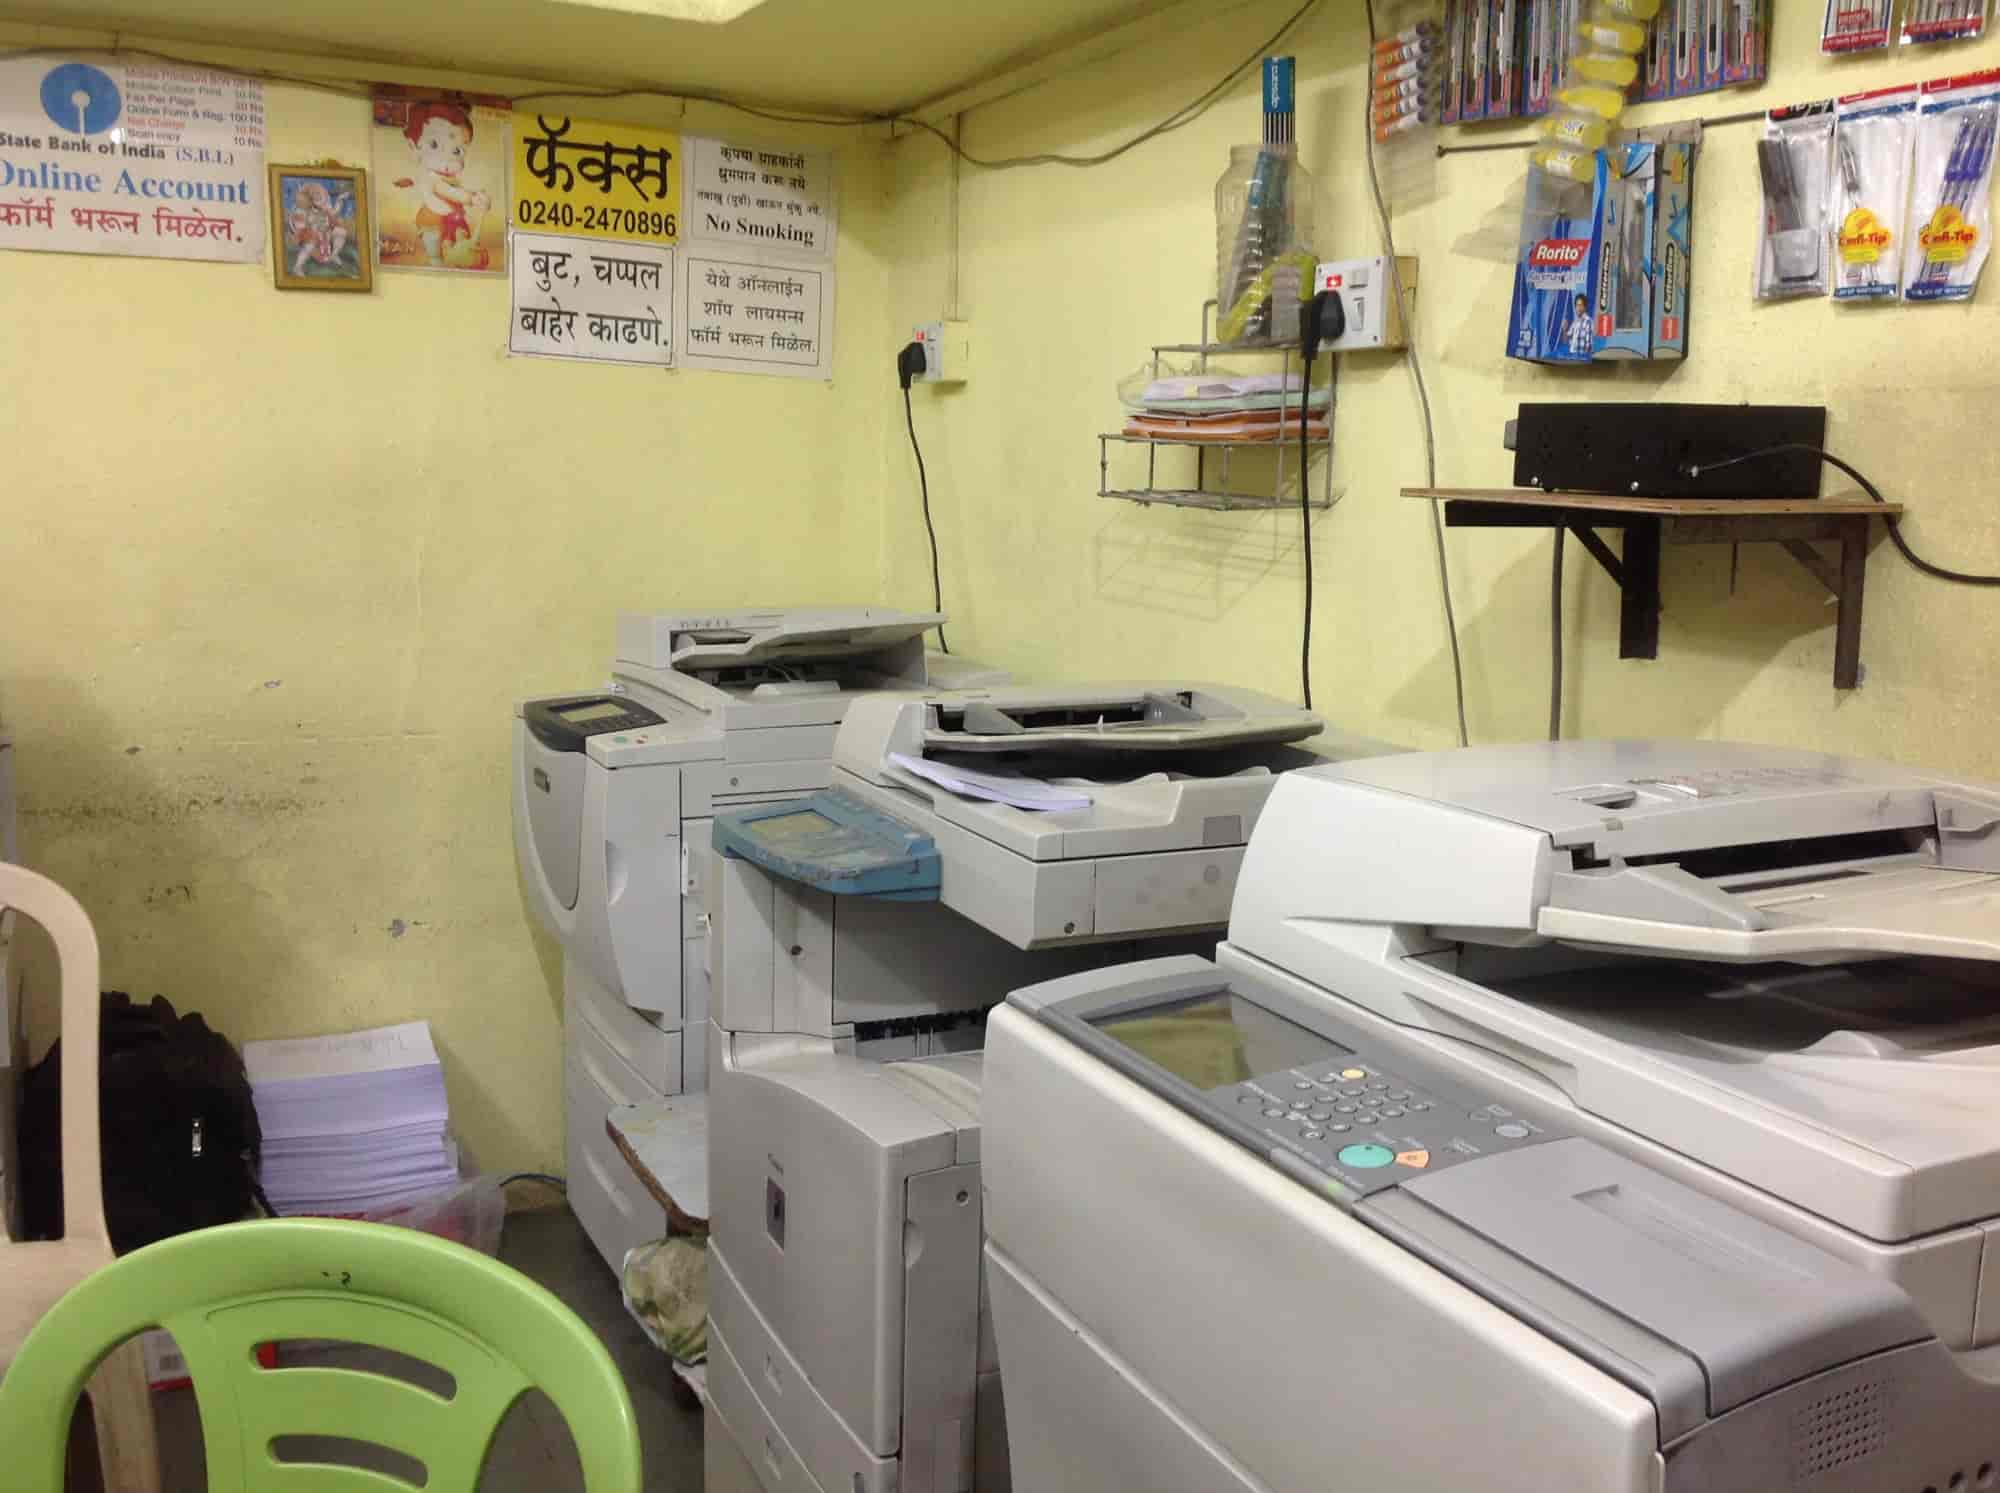 Kamal Xerox And Multi Services Photos, CIDCO N 6, Aurangabad